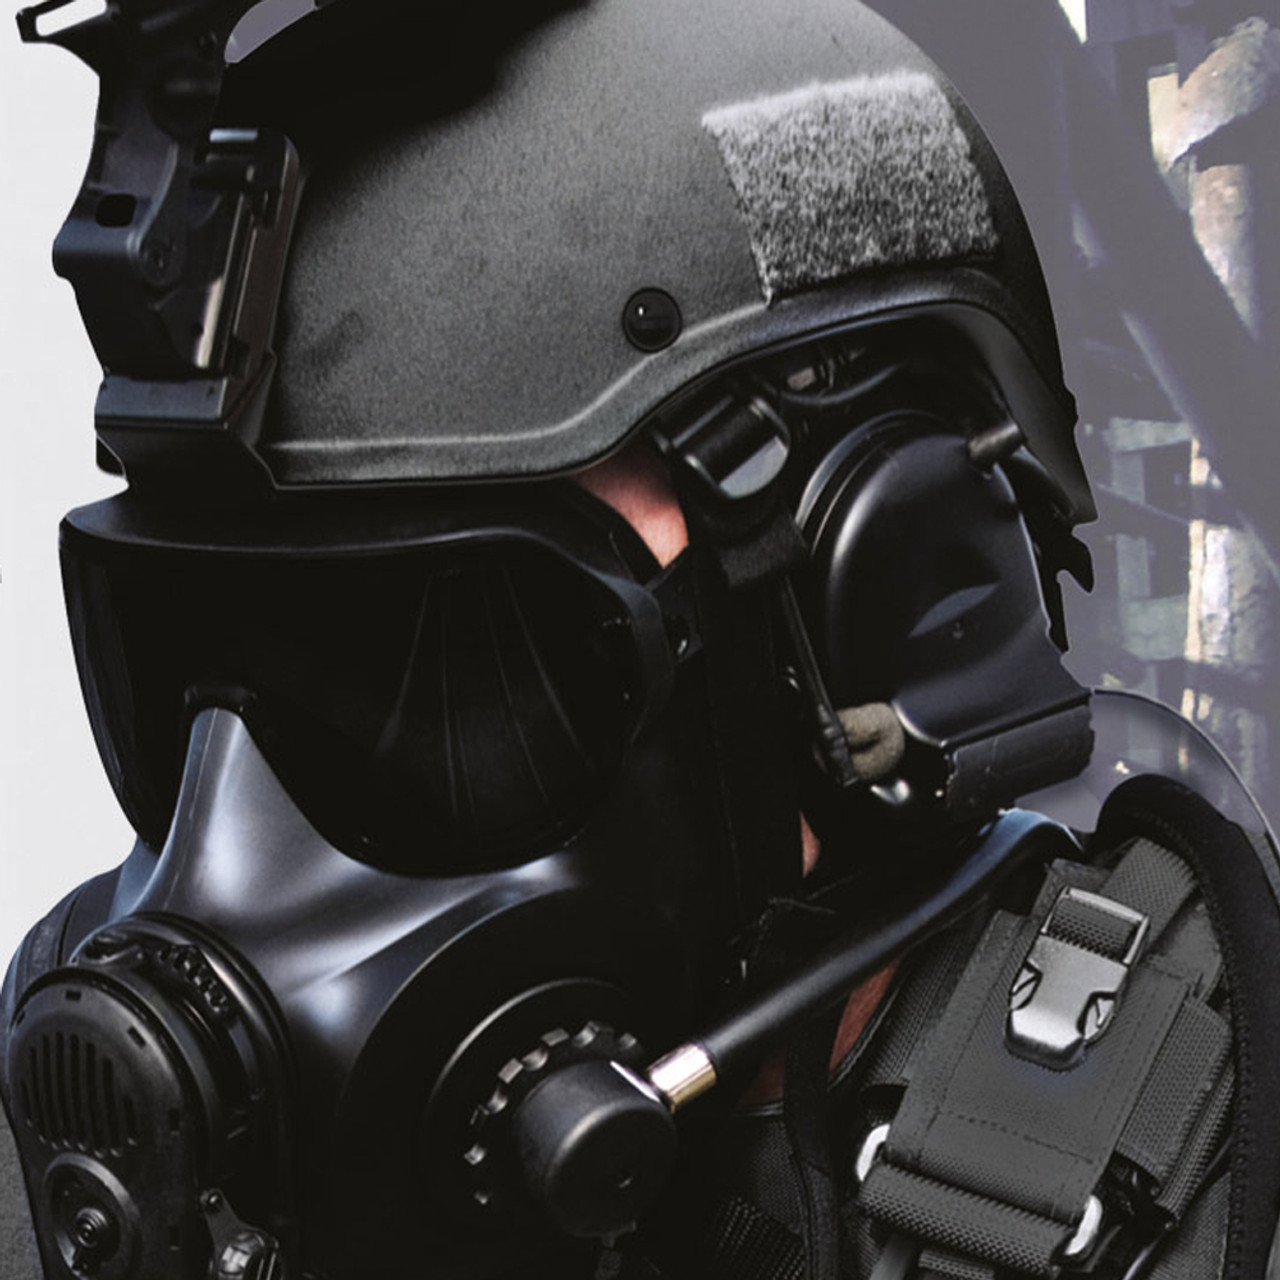 Avon Protection ST53 Twin Port Special Responder Kit Total Respiratory Protection System, Combines FM53 with advanced breathing apparatus for up to 45 Minute Applications